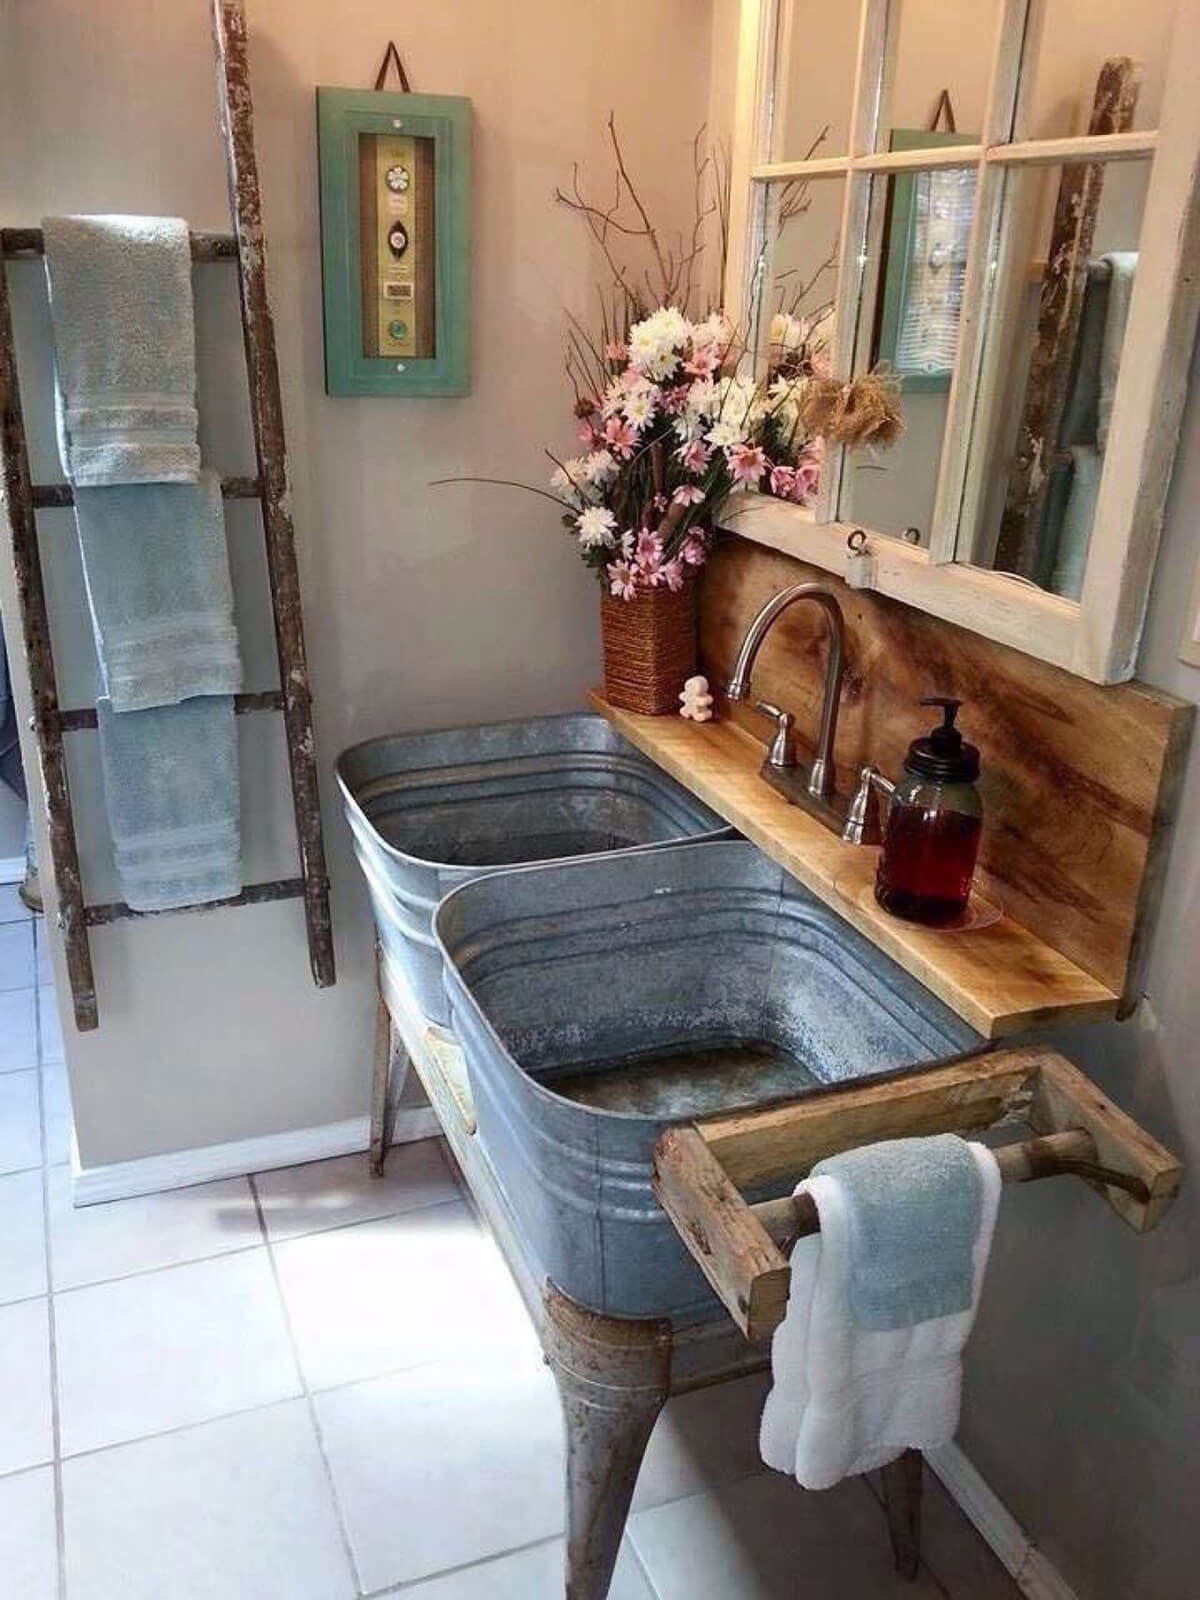 27 Best Galvanized Tub And Bucket Ideas And Designs For 2021